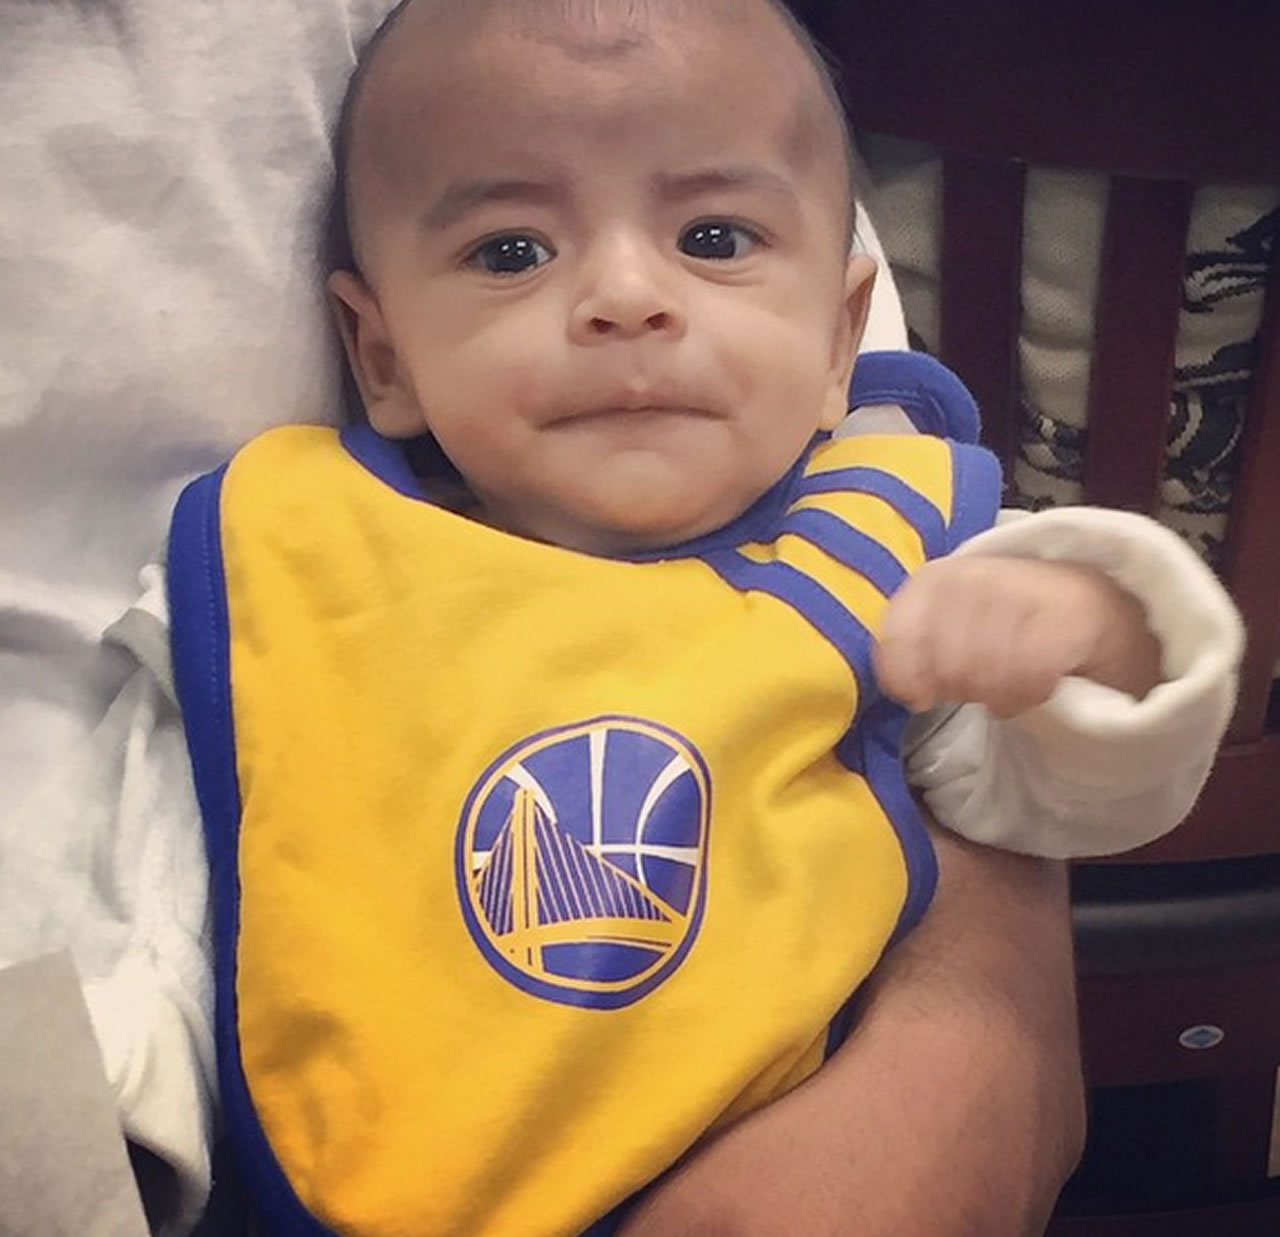 <div class='meta'><div class='origin-logo' data-origin='none'></div><span class='caption-text' data-credit=''>Never too little to root for the Warriors! Tag your photos on Facebook, Twitter, Google Plus or Instagram using #DubsOn7.Photo sent to KGO-TV by jcq_montano/ Instagram</span></div>